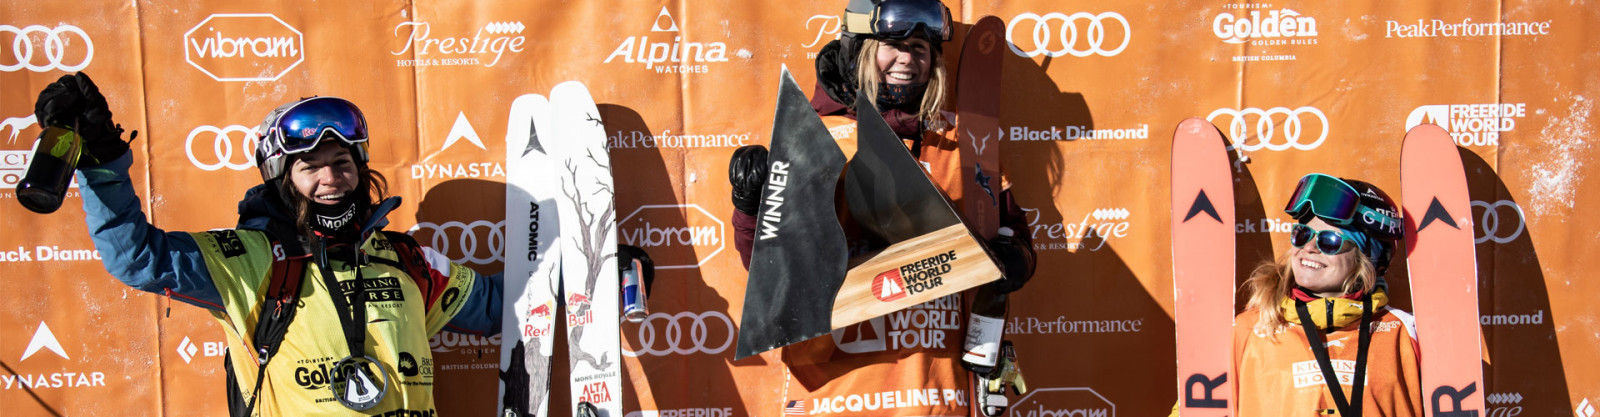 Hazel Birnbaum on the podium of the Freeride World Tour in Kicking Horse.